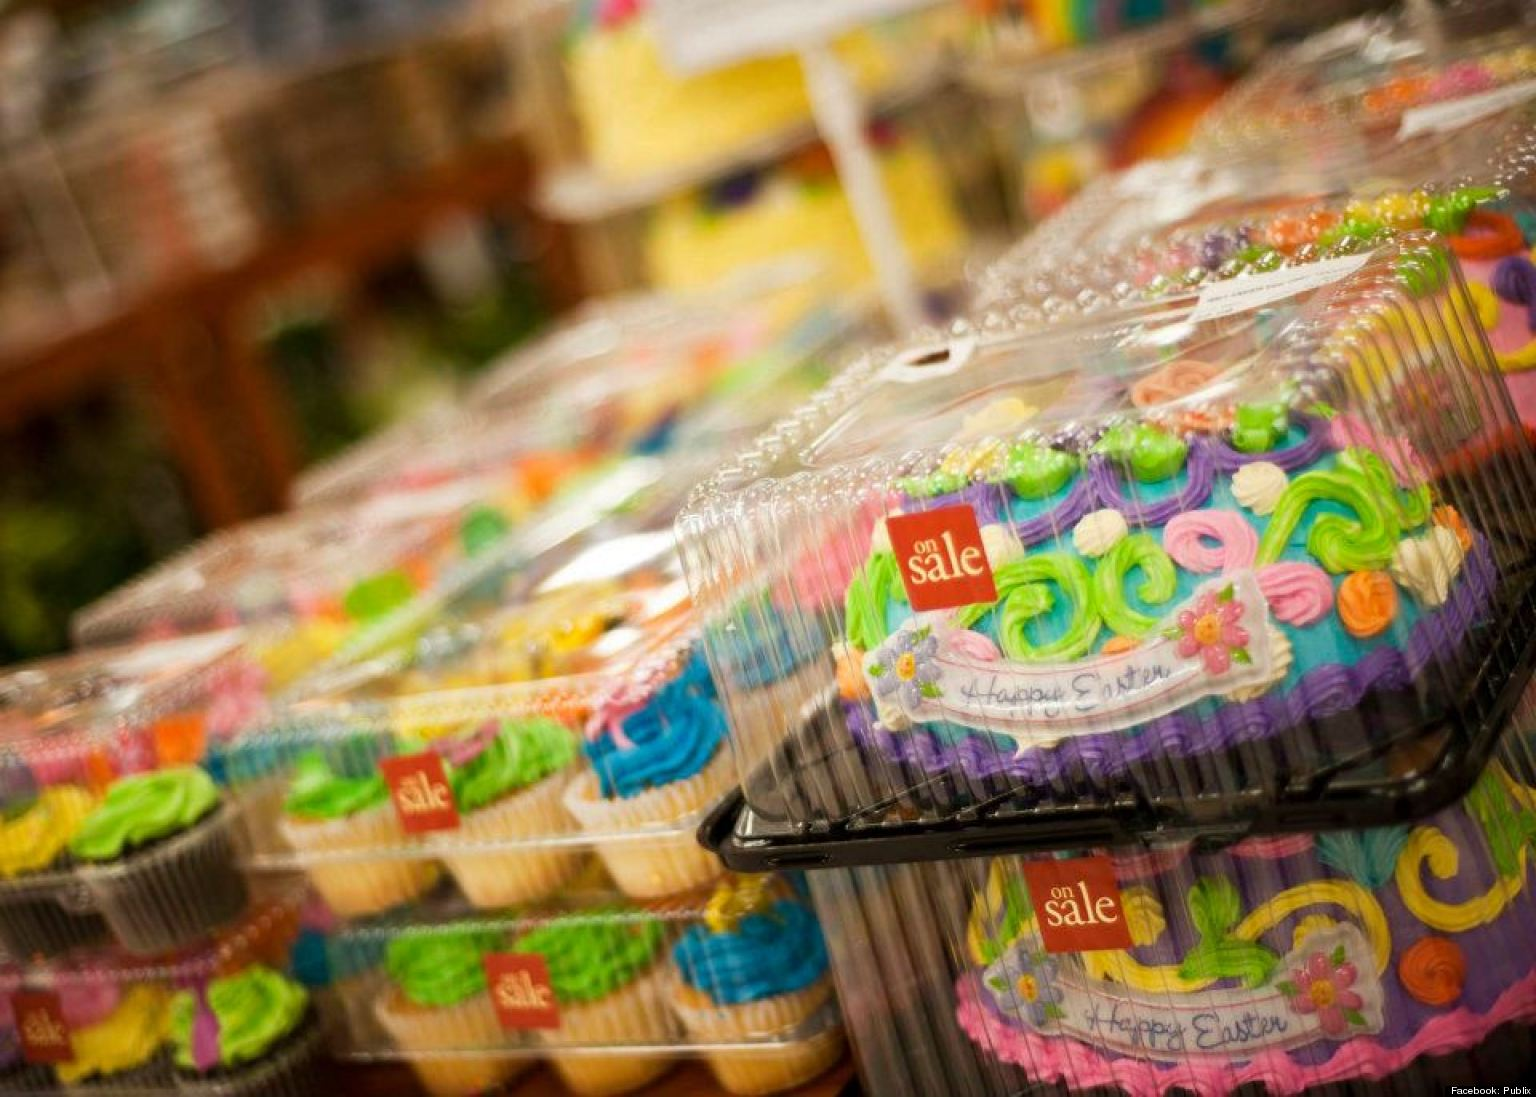 Publix Cake Recall Chain Pulls 45 Varieties In Florida Over